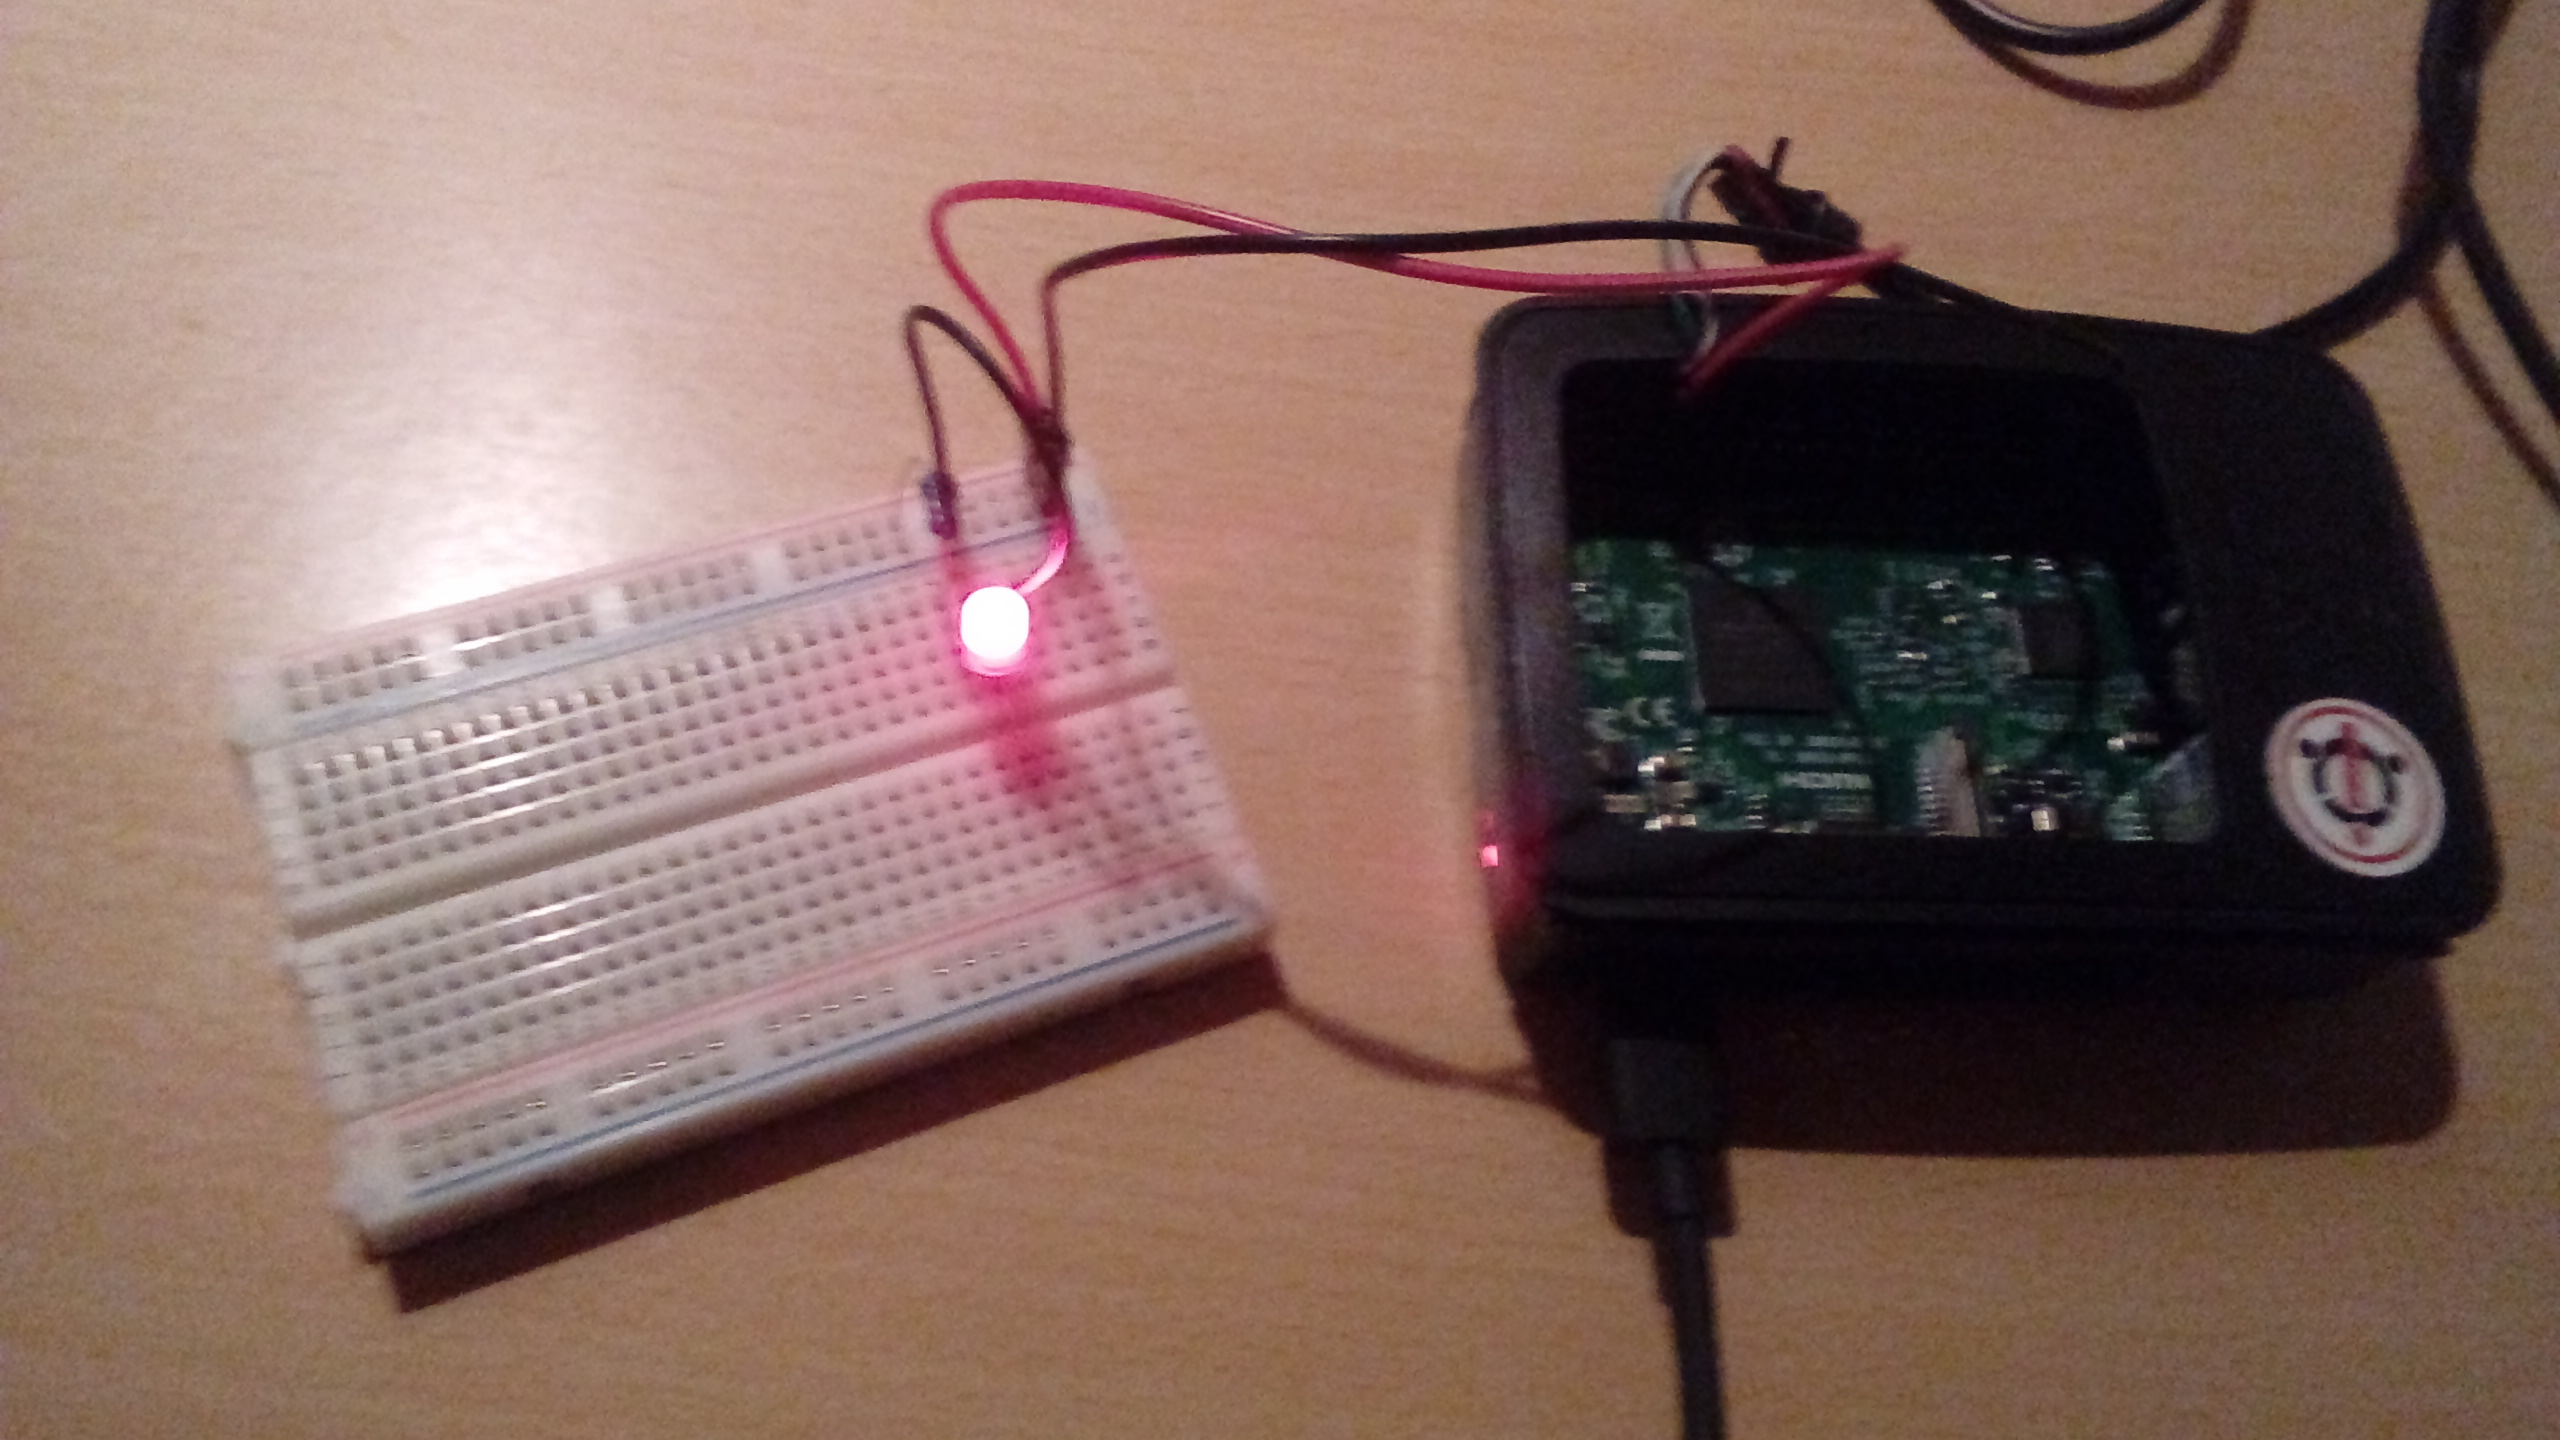 picture of the Raspberry Pi prototype